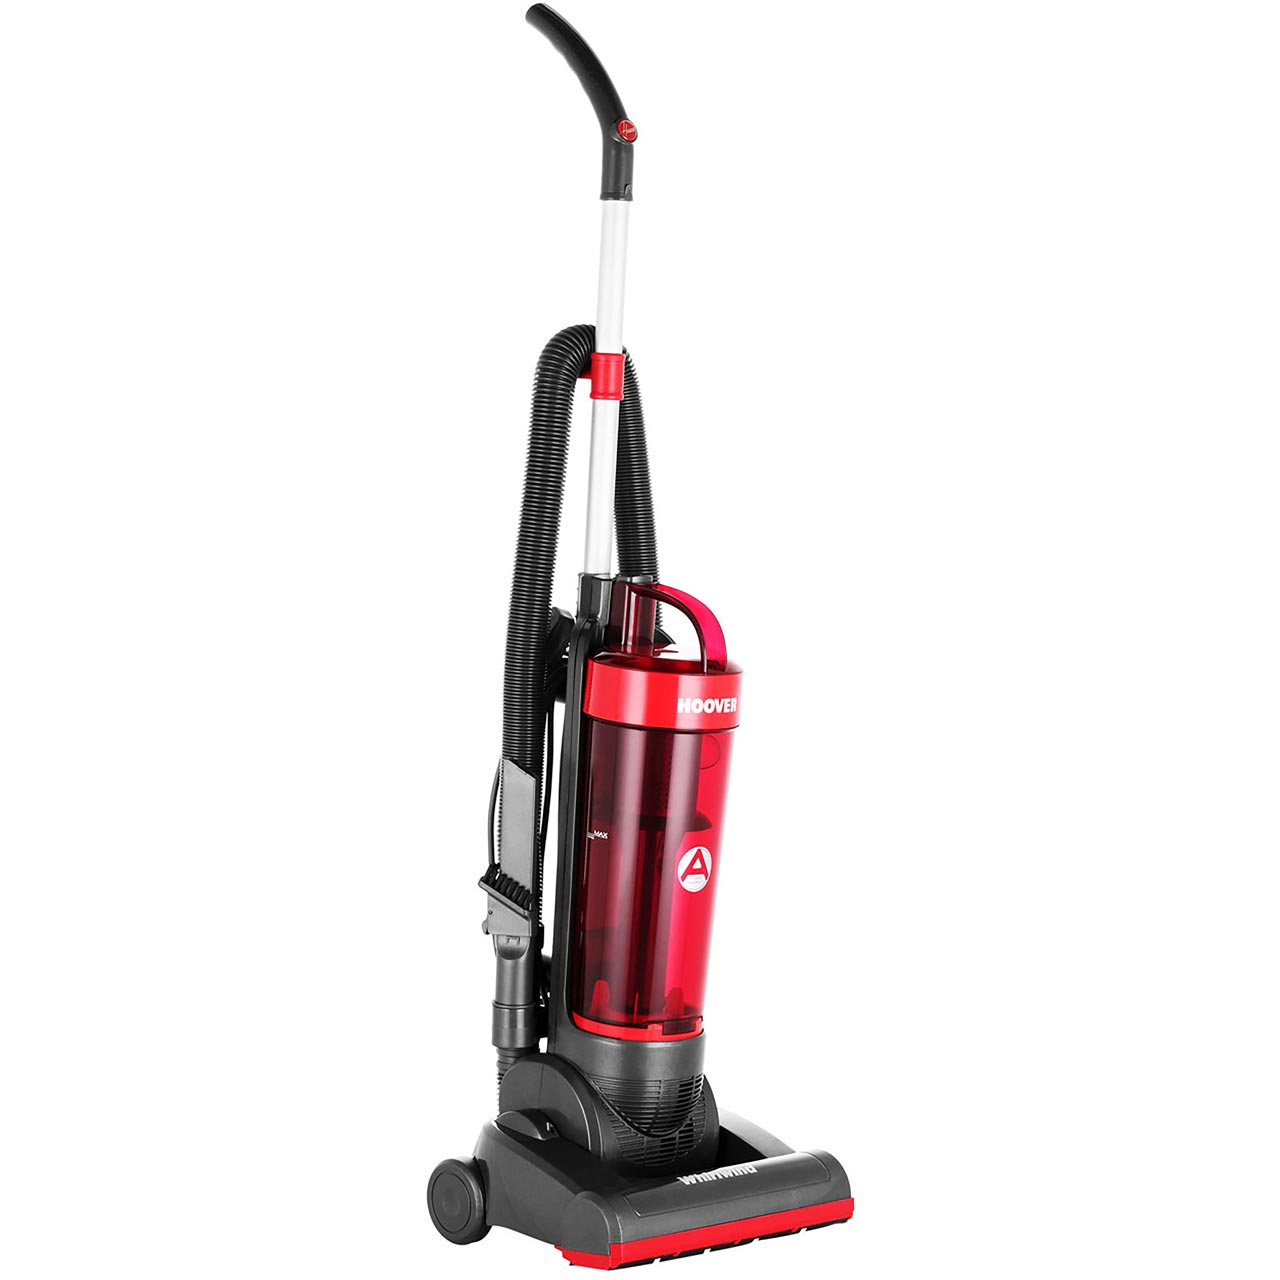 Hoover Whirlwind WR71WR01 Bagless Upright Vacuum Cleaner Vacuum